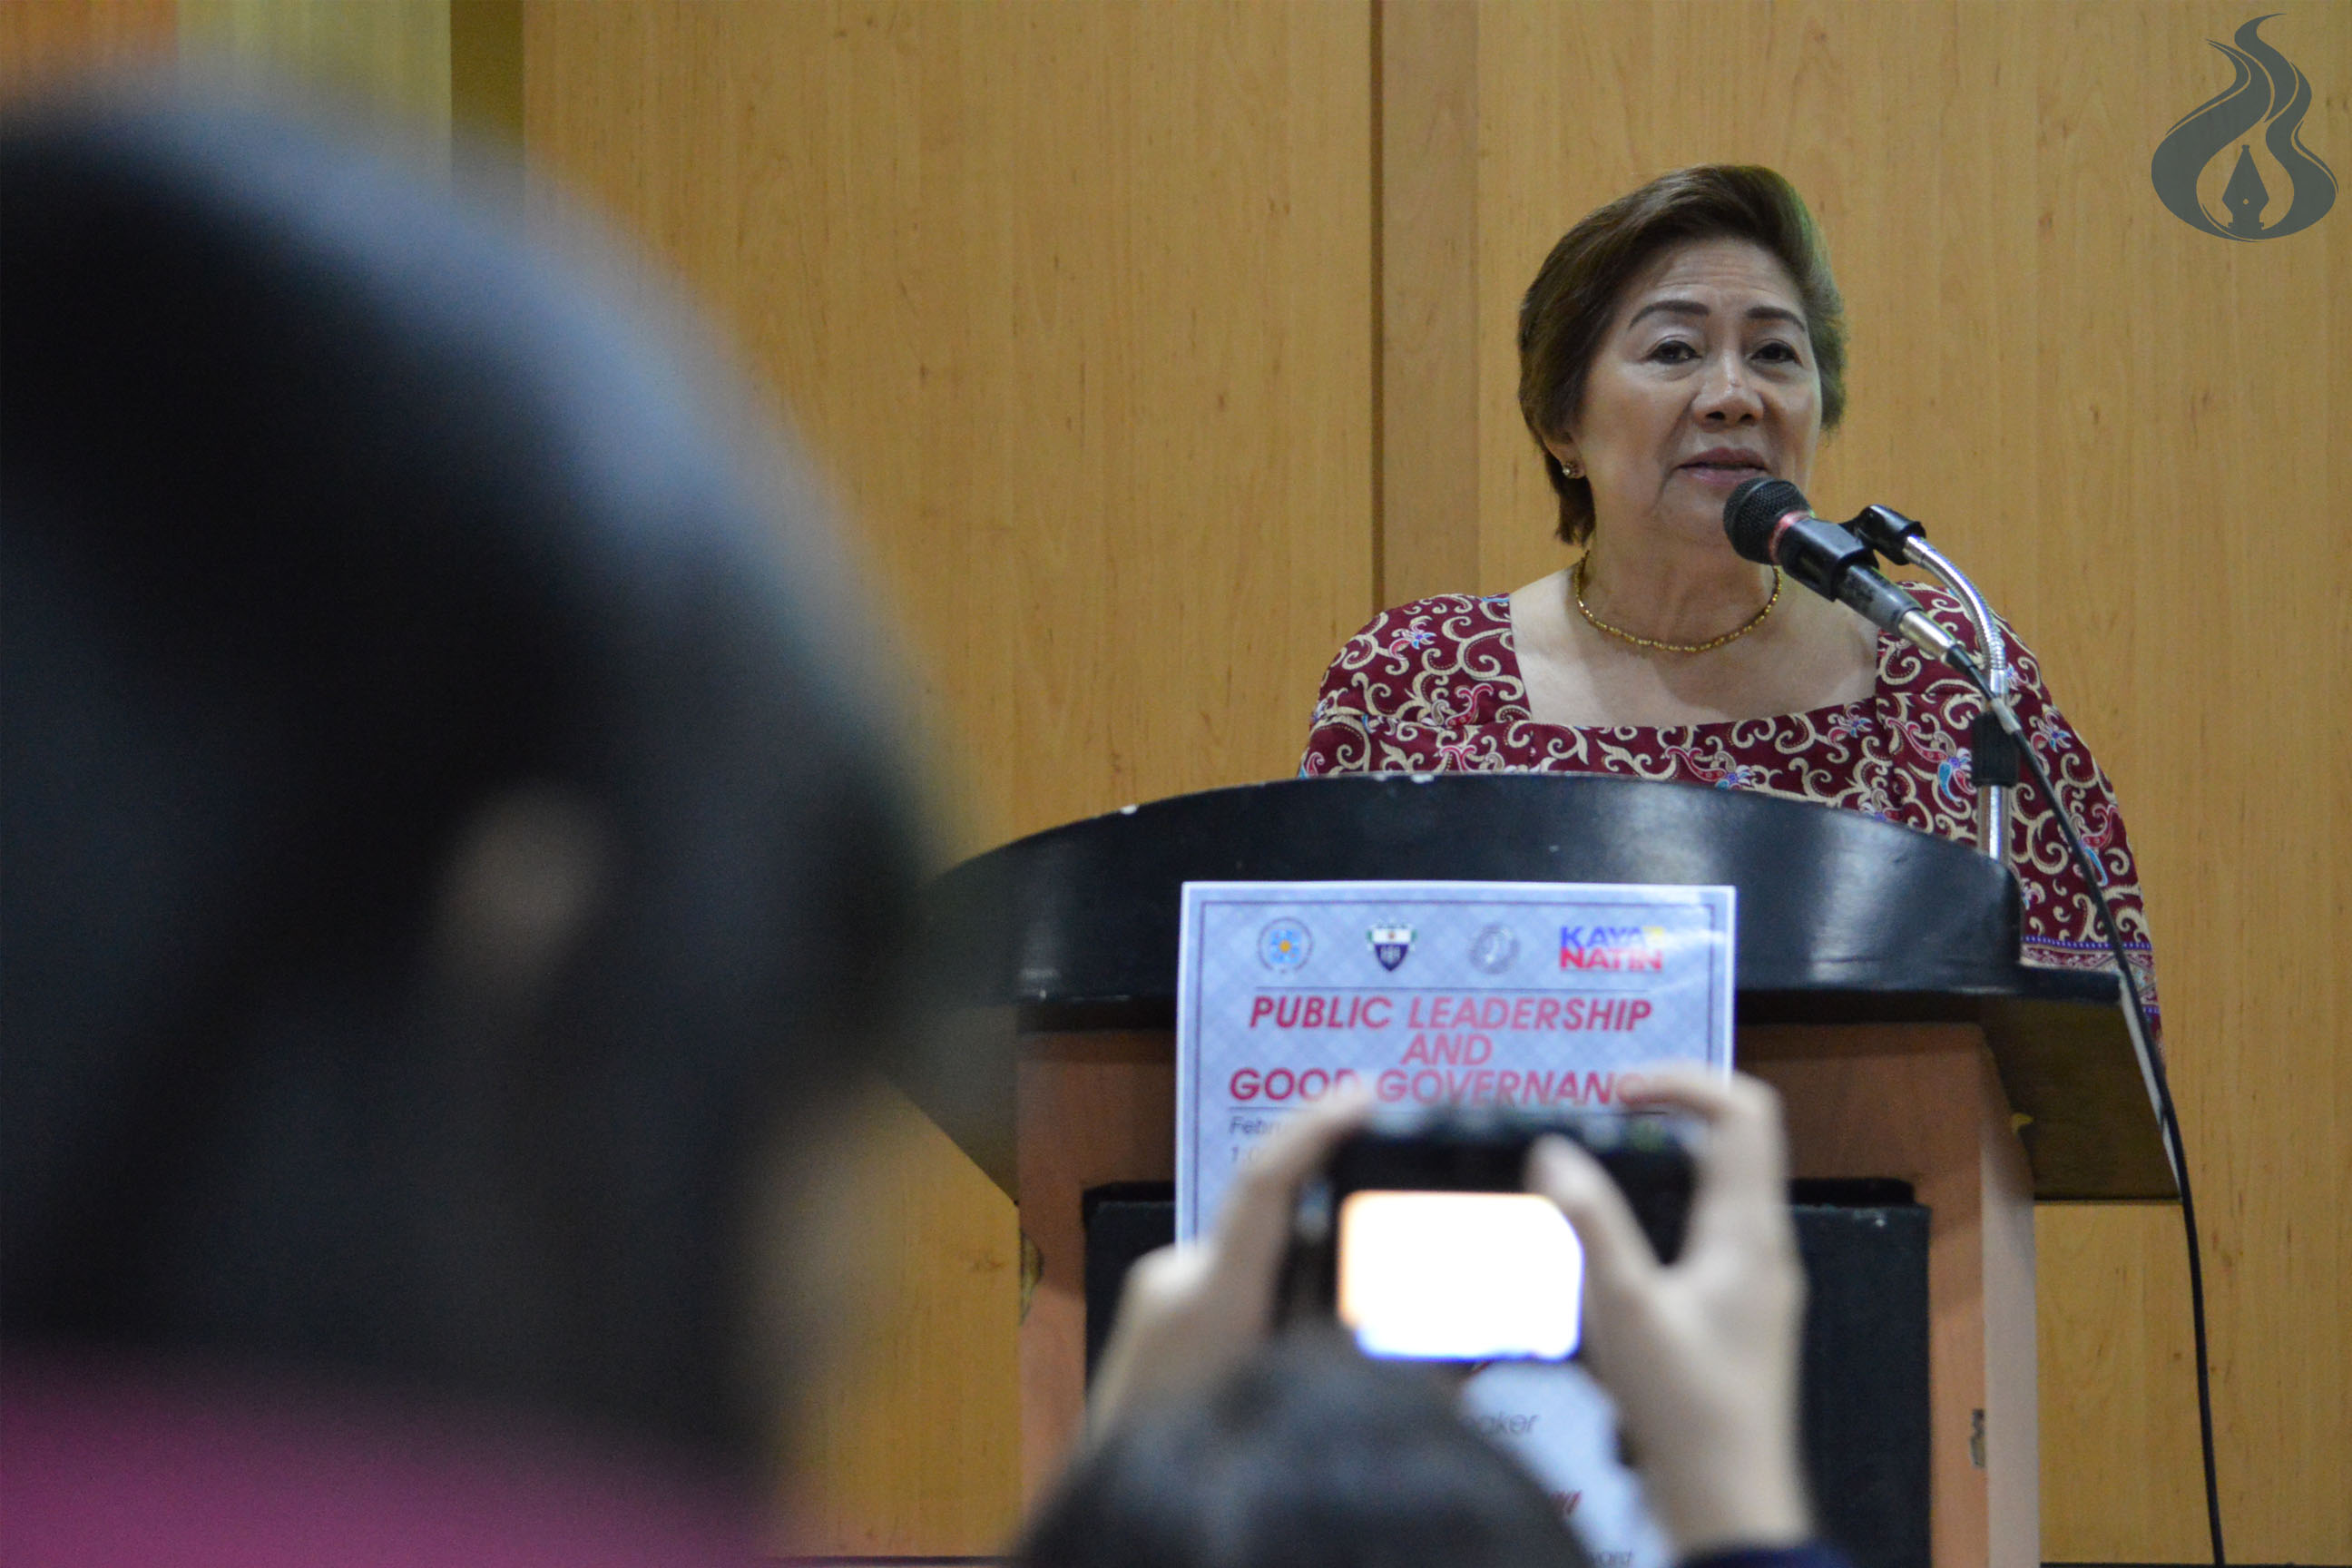 Collaboration of men and women contributes to better society, former mayor says